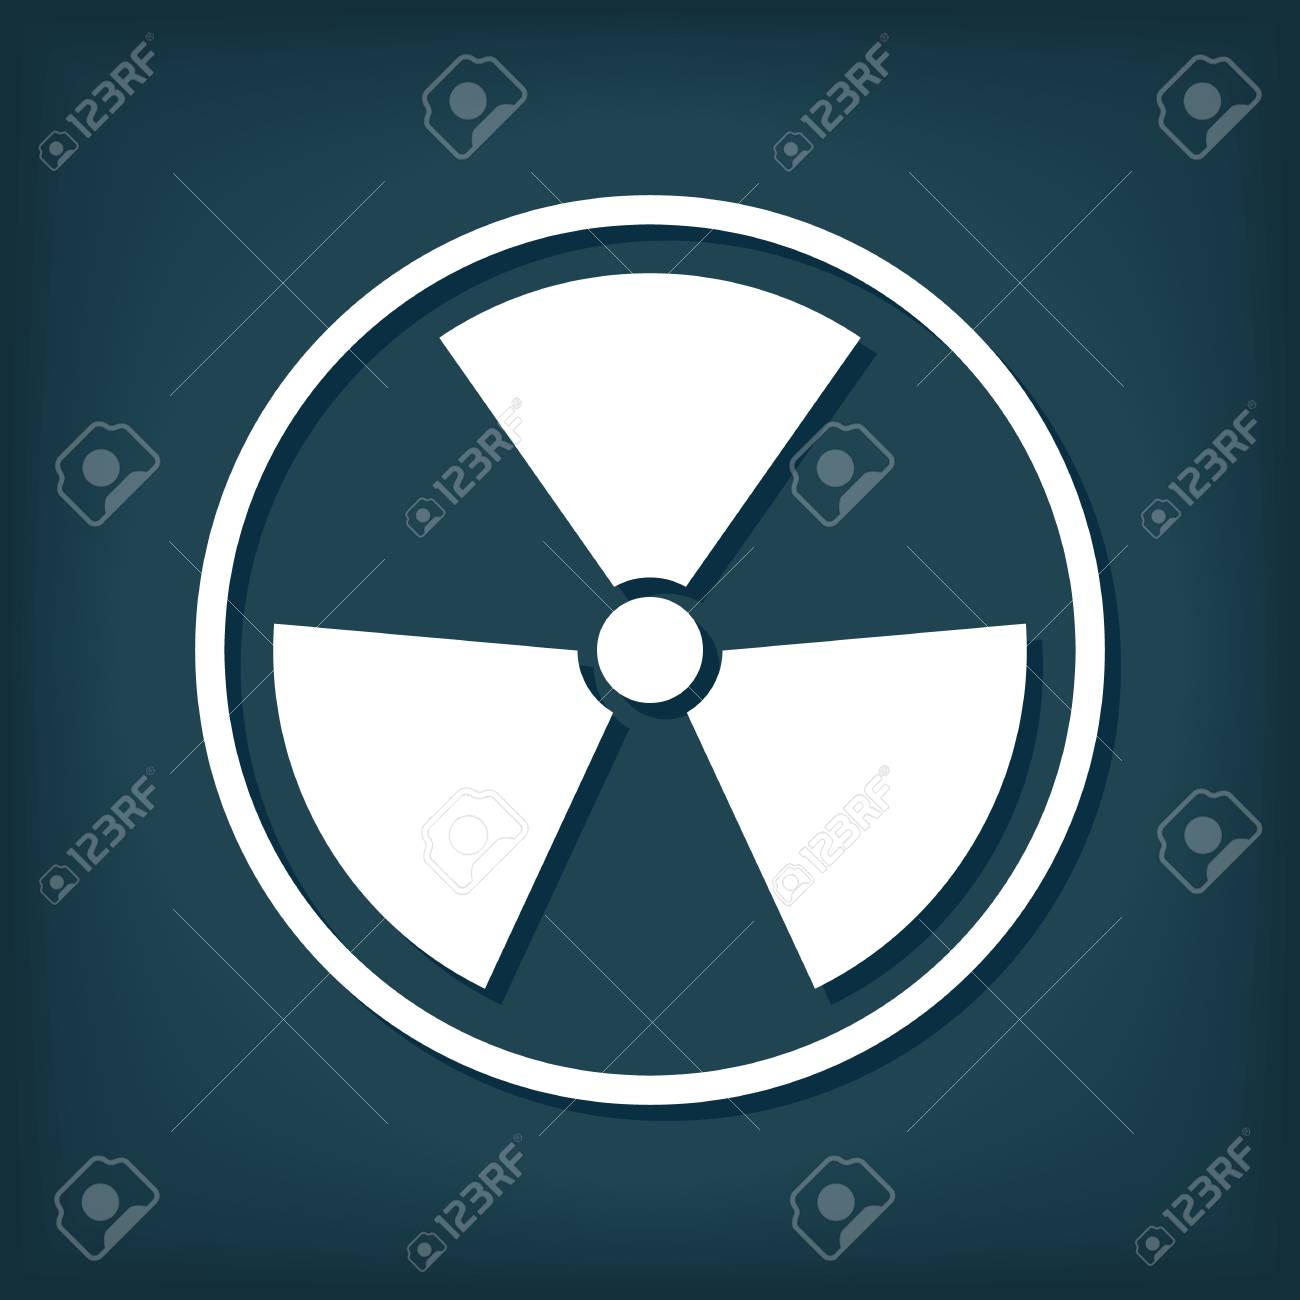 Universal symbol for radiation choice image symbol and sign ideas radiation symbol royalty free cliparts vectors and stock radiation symbol stock vector 89107735 buycottarizona buycottarizona